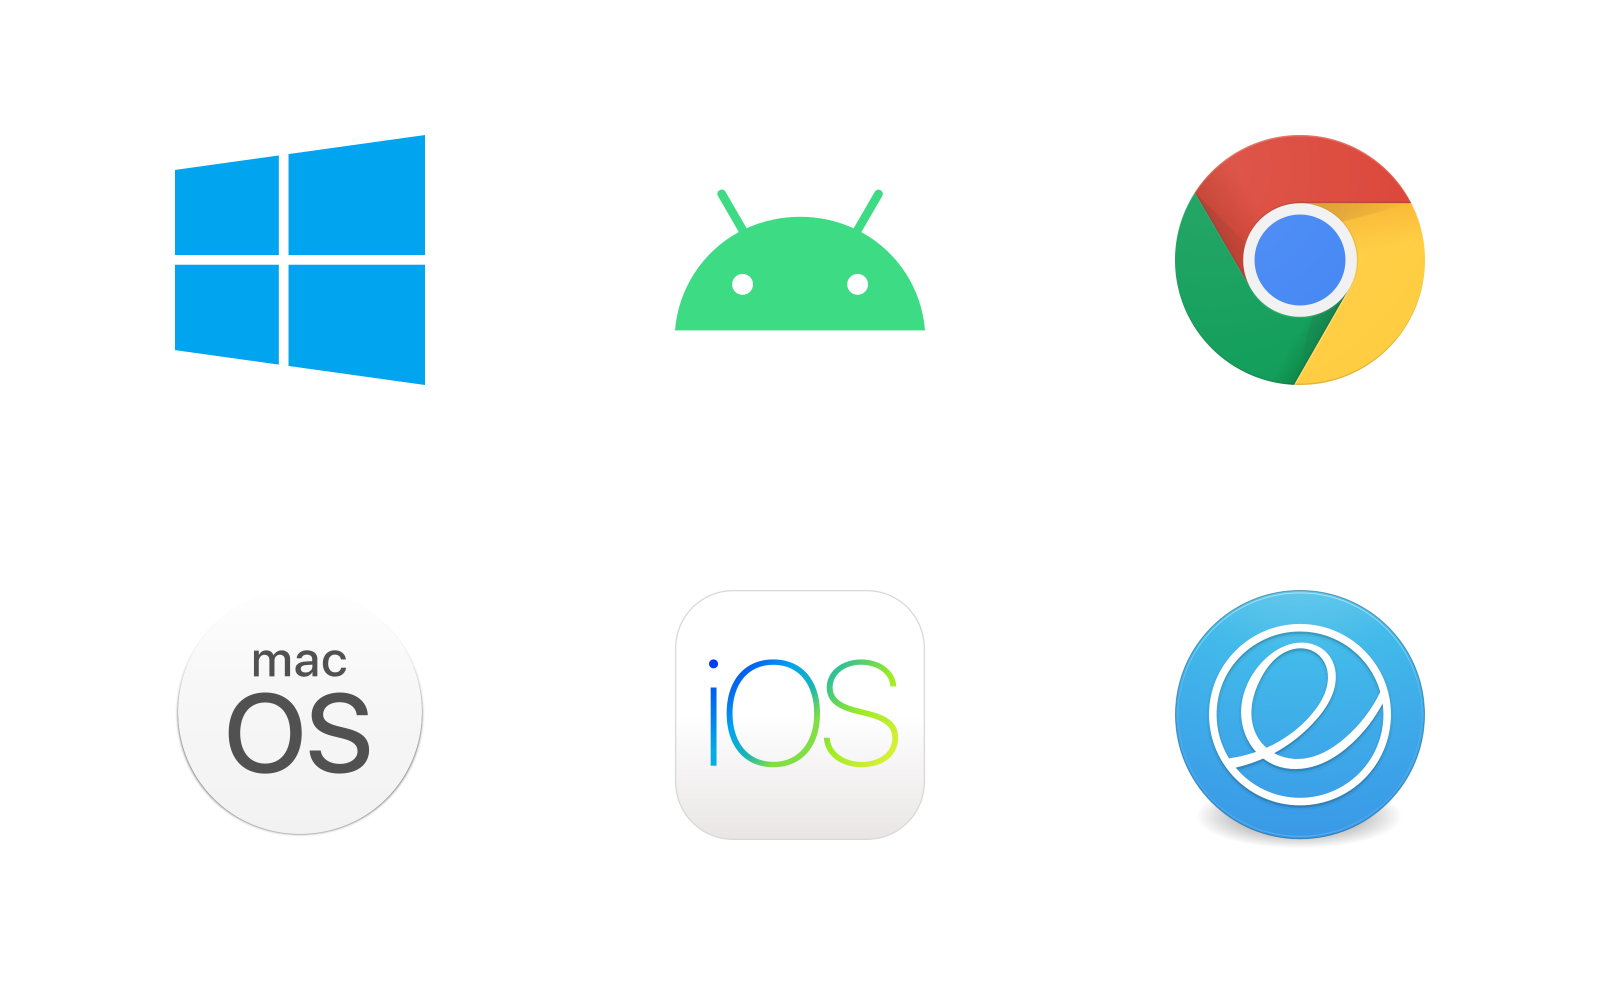 Logos of Windows, Android, Chrome OS, macOS, iOS, and elementary OS